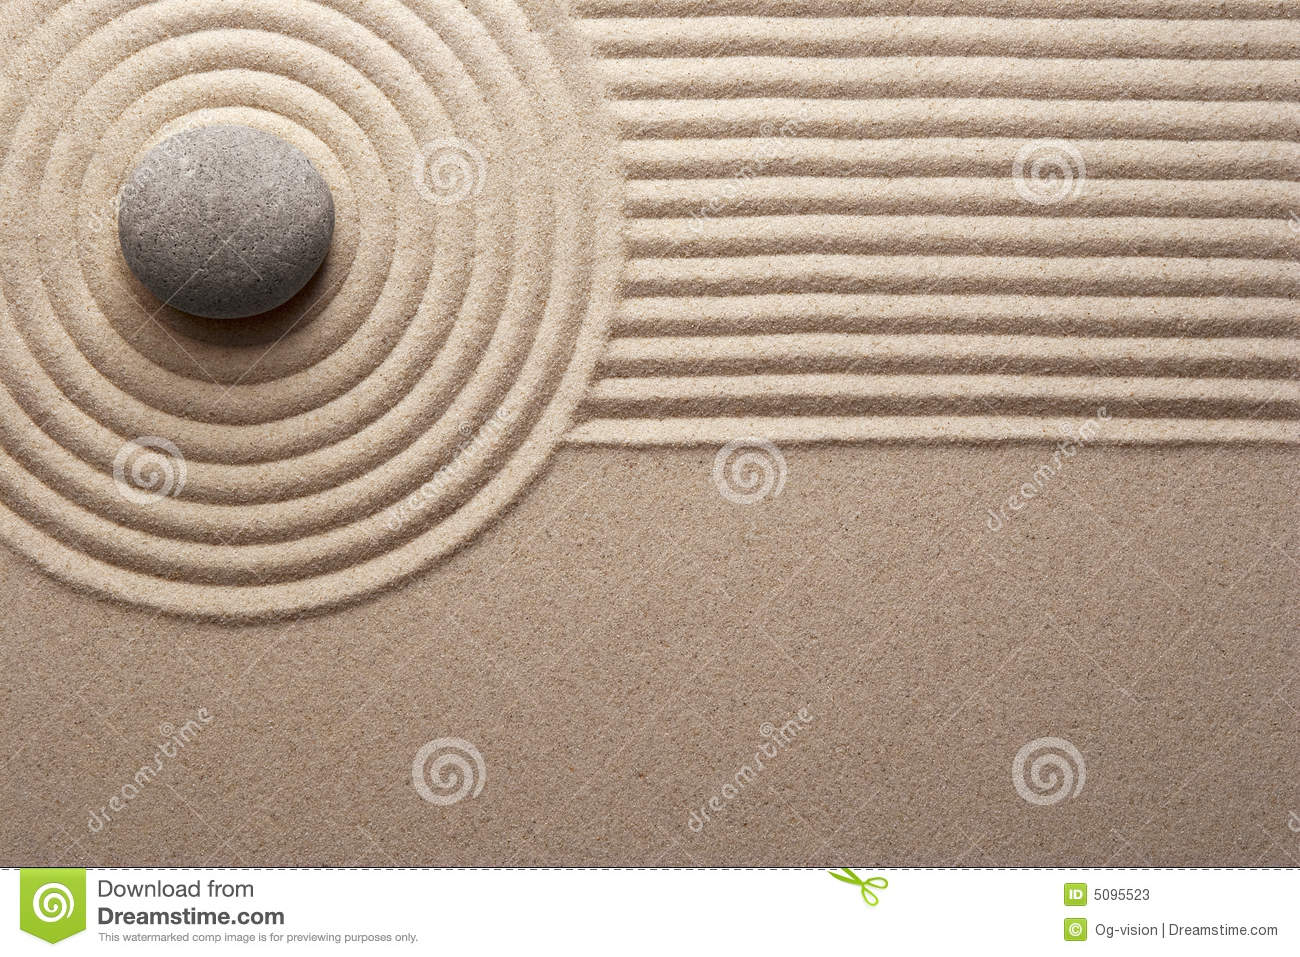 Zen garden stock image. Image of concept, miniature, still - 5095523